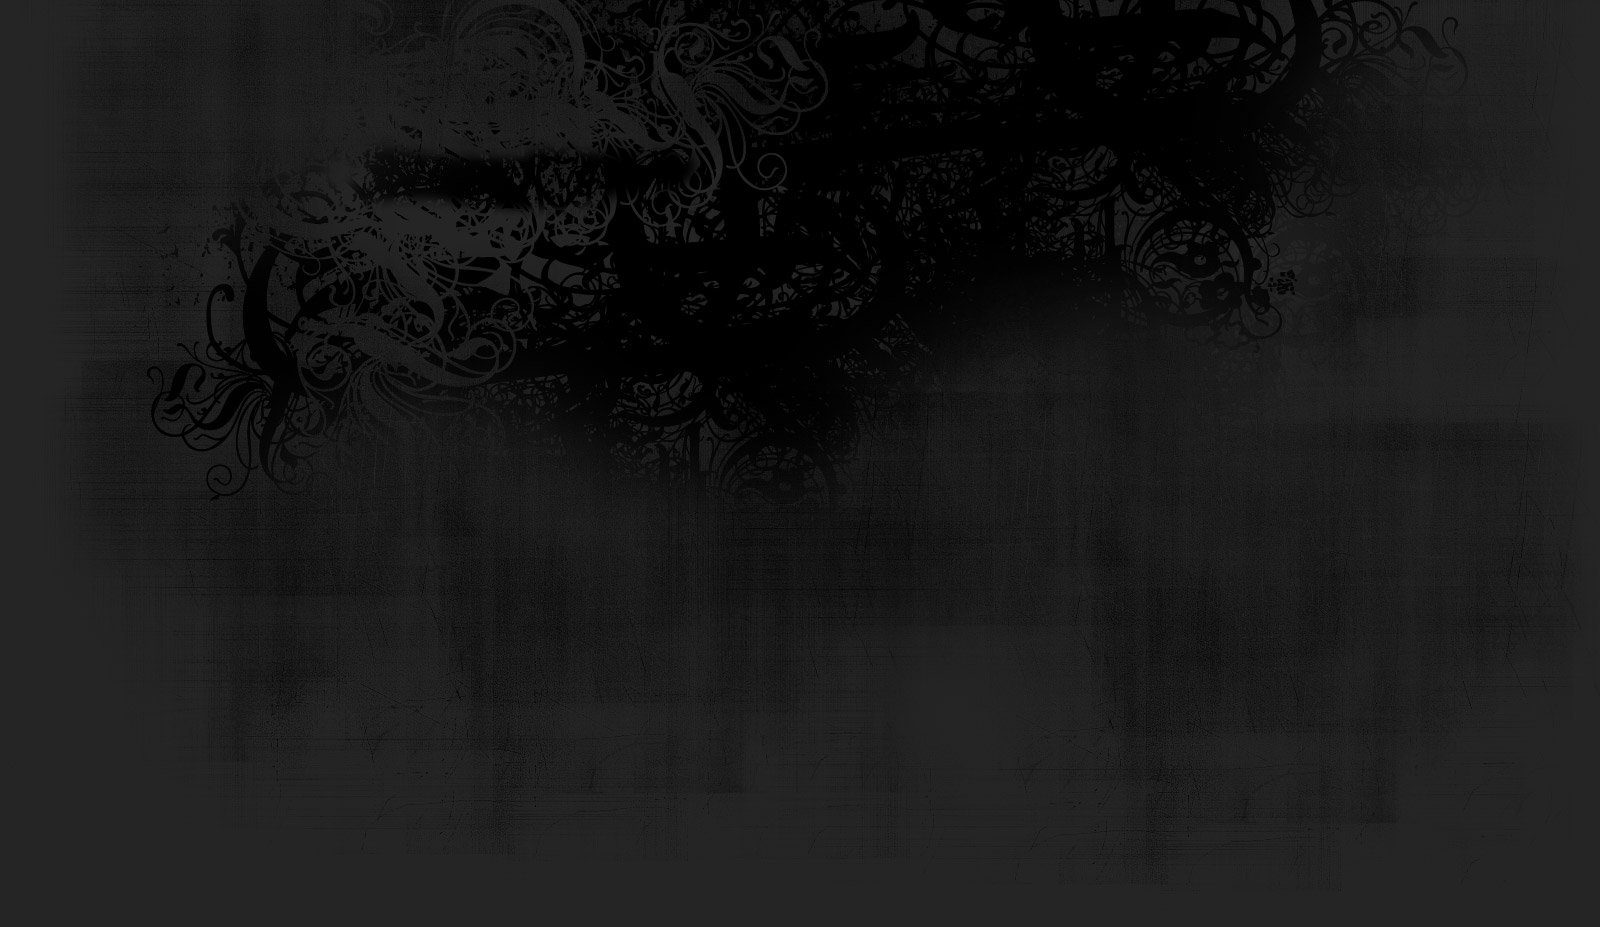 Grunge Background From The City Theme DesignerFiedcomDesignerFied 1600x927